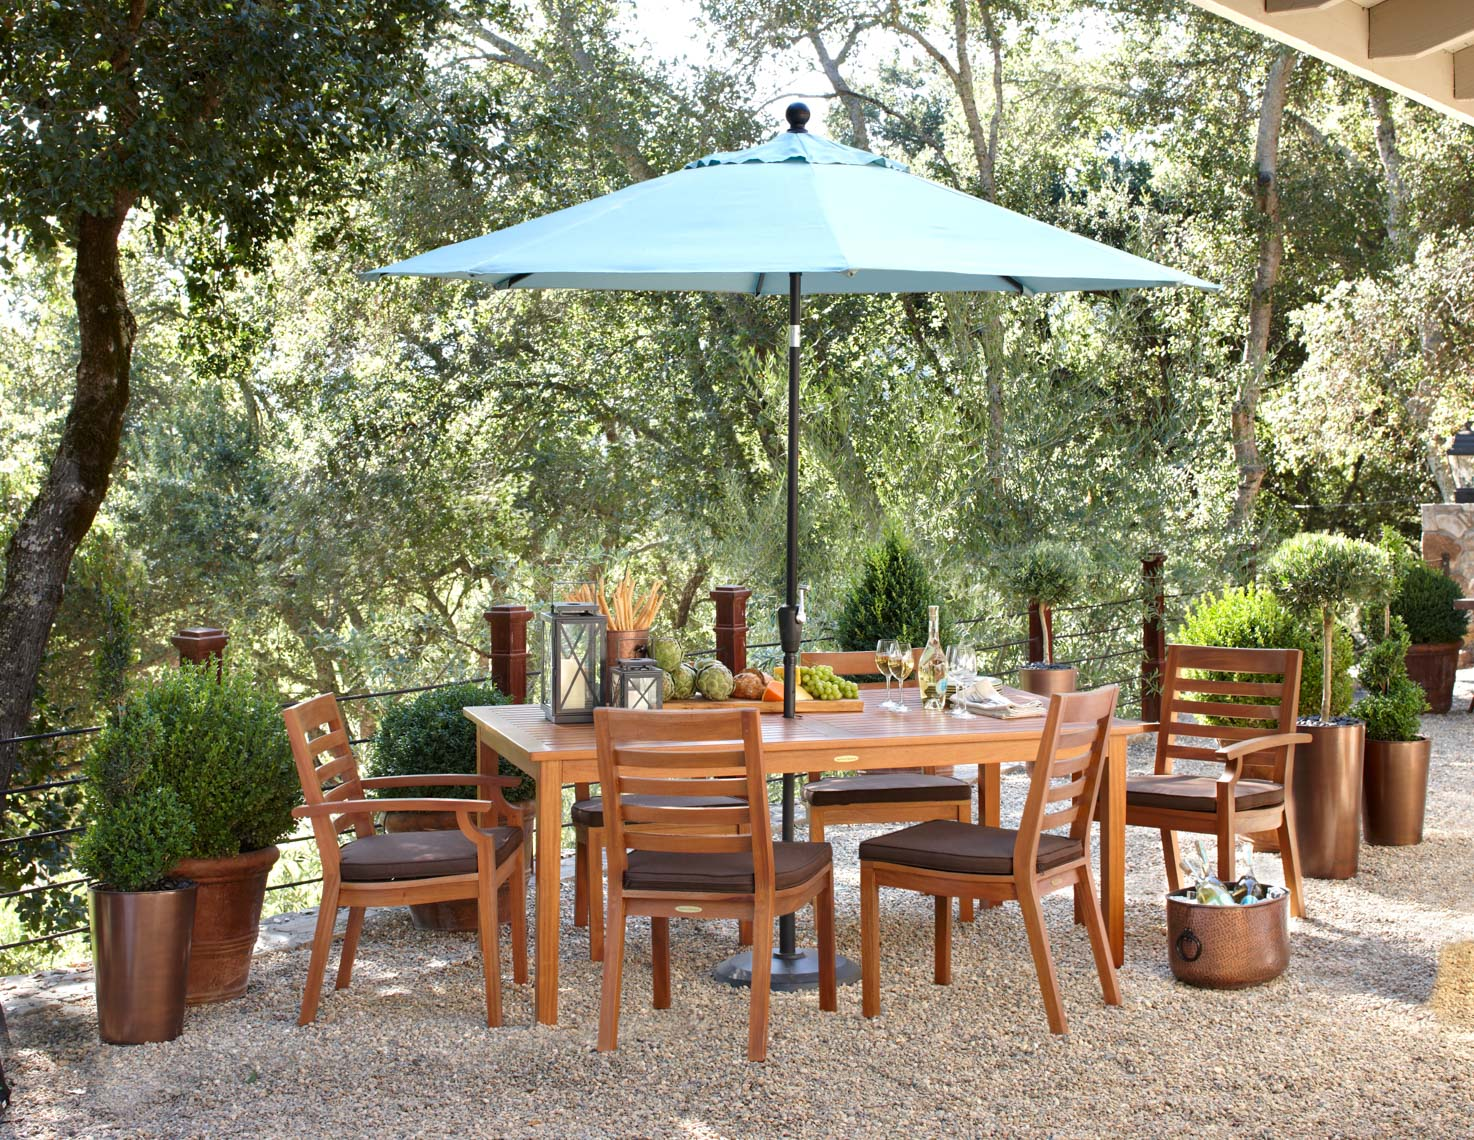 Teak wood dinning furniture with green umbrella in pea gravel